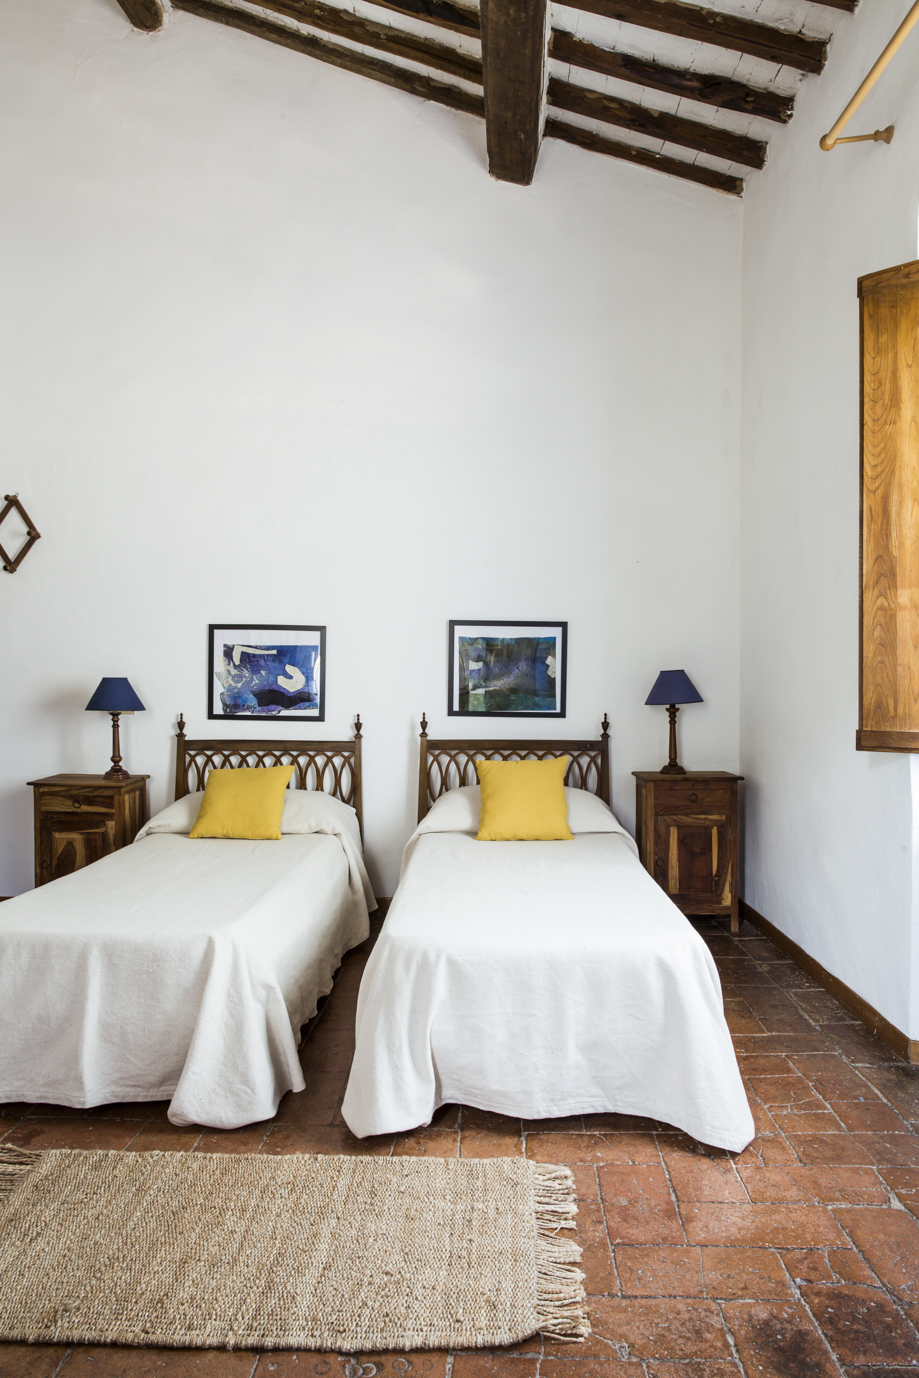 Triple room - with shared bathroom.$1950 USD (PER PERSON)A prefect room to share! These light friendly rooms are sweet and lovely, offering a shared hallway bathroom with another room.